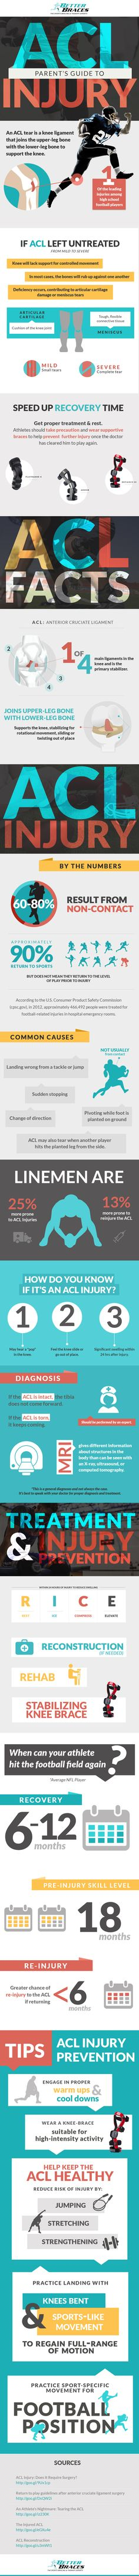 Your step-by-step guide to #ACL recovery